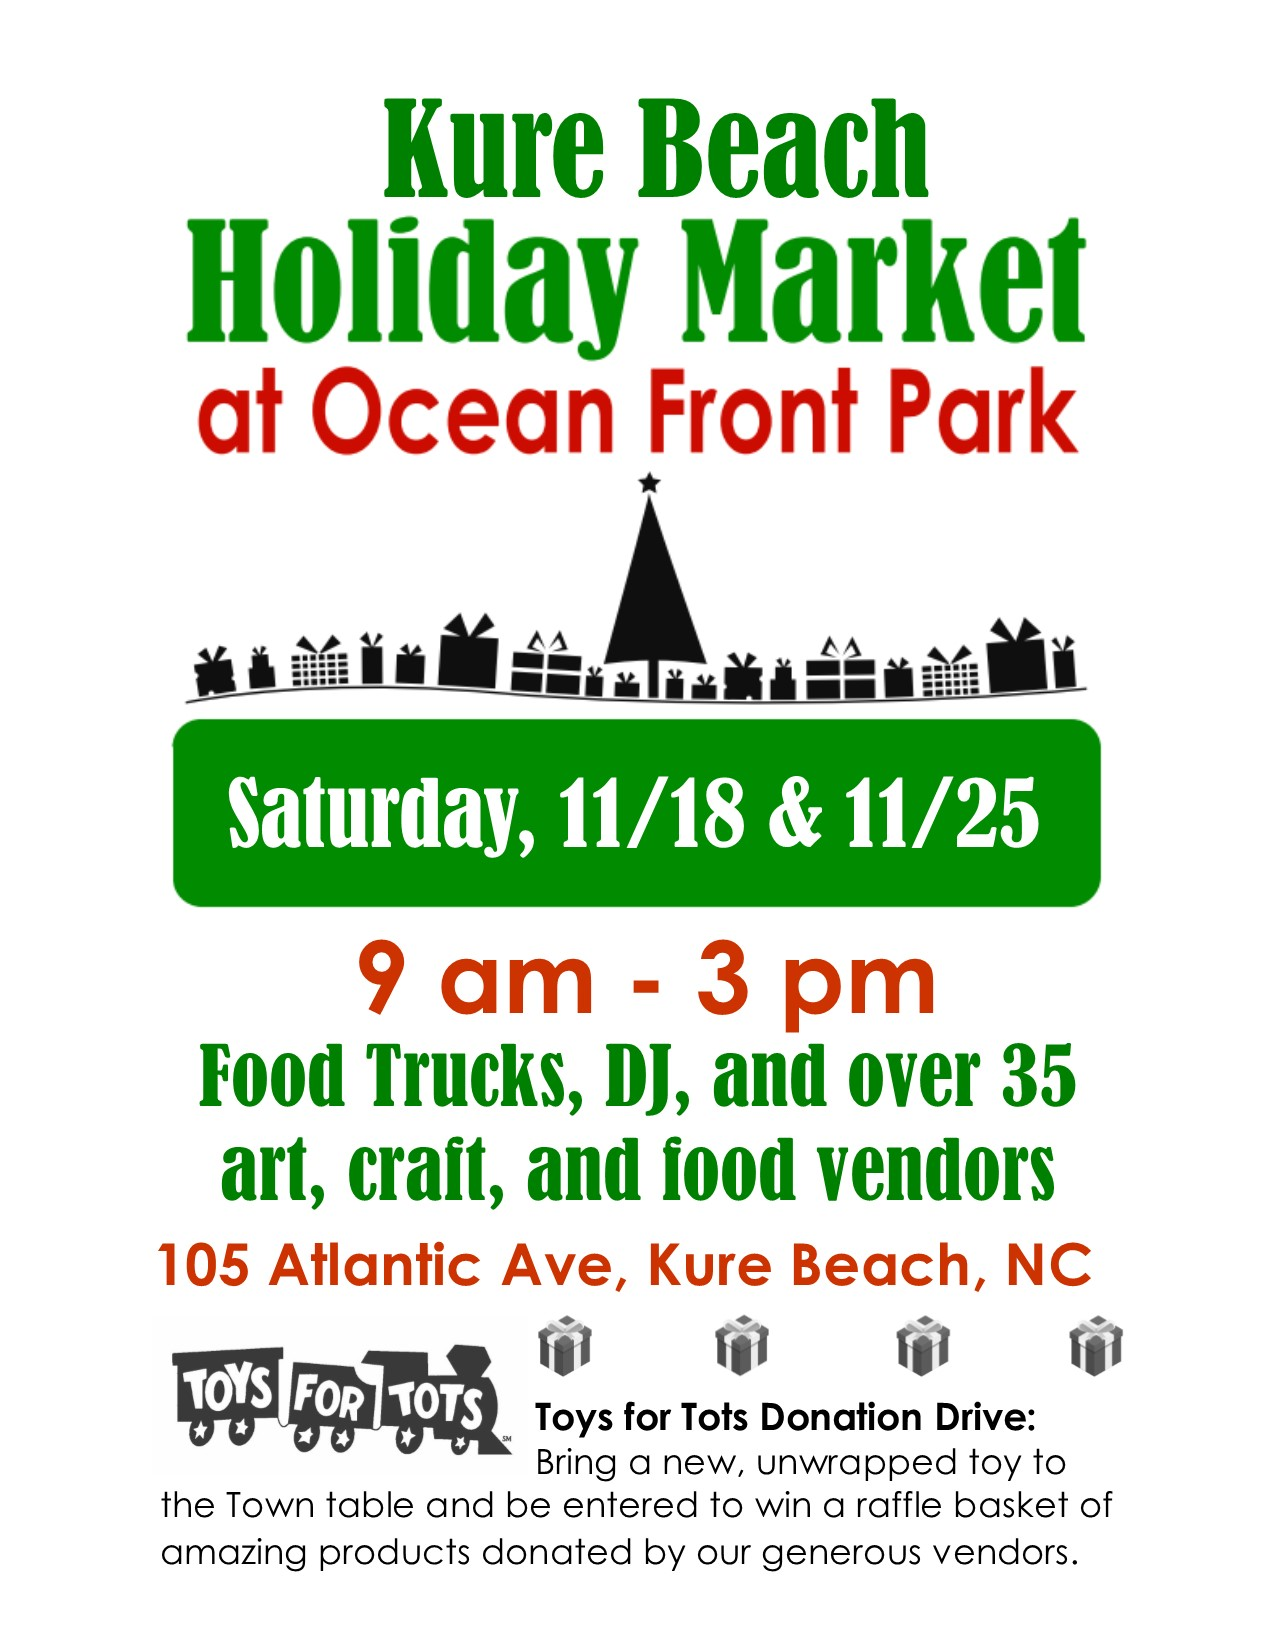 Kure Beach Holiday Market